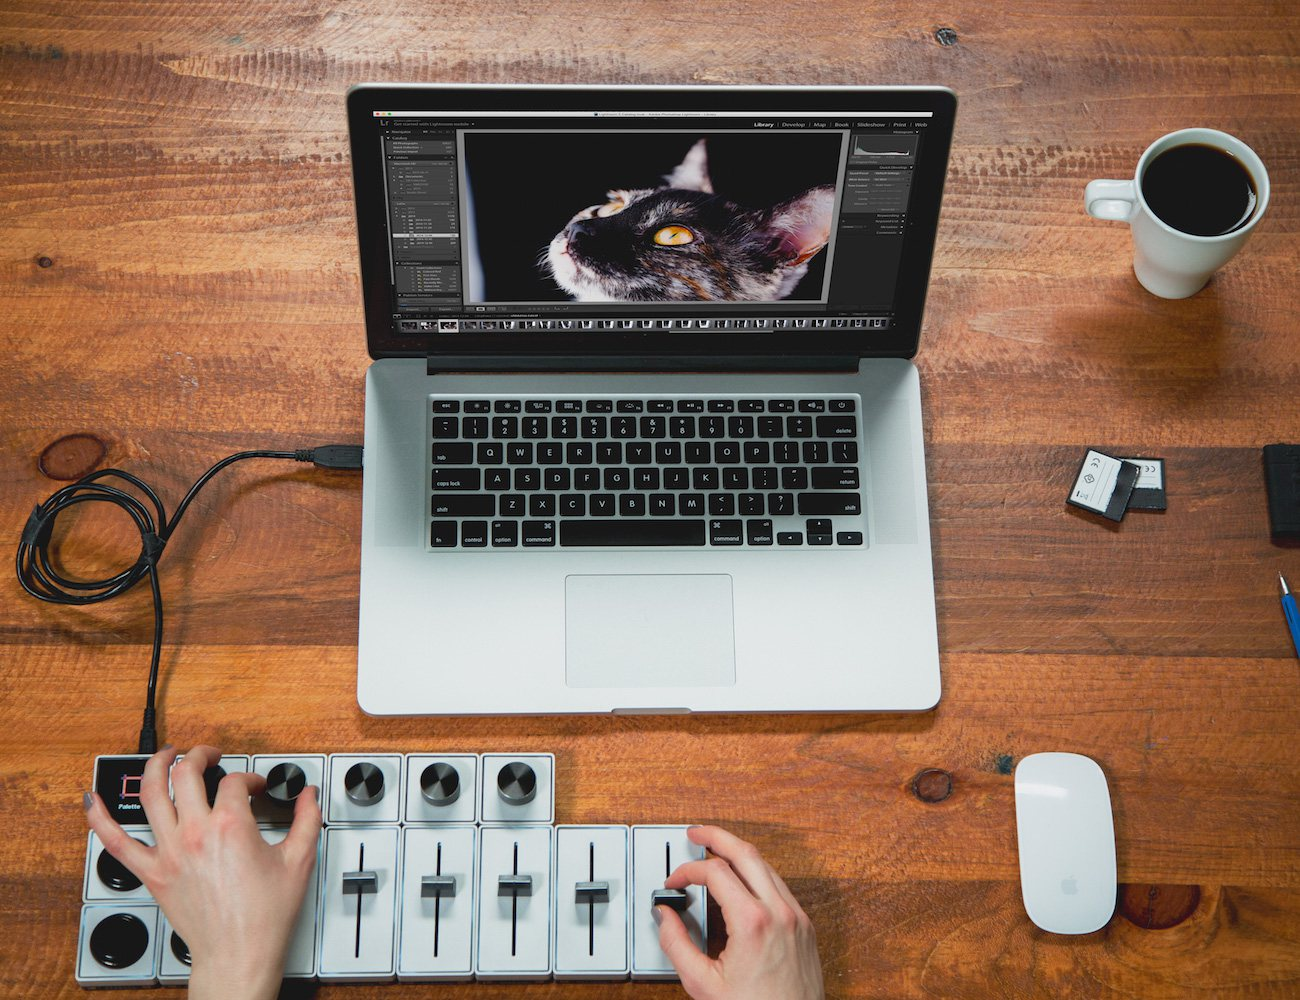 Palette – Physical Controls For a Precise Editing Experience